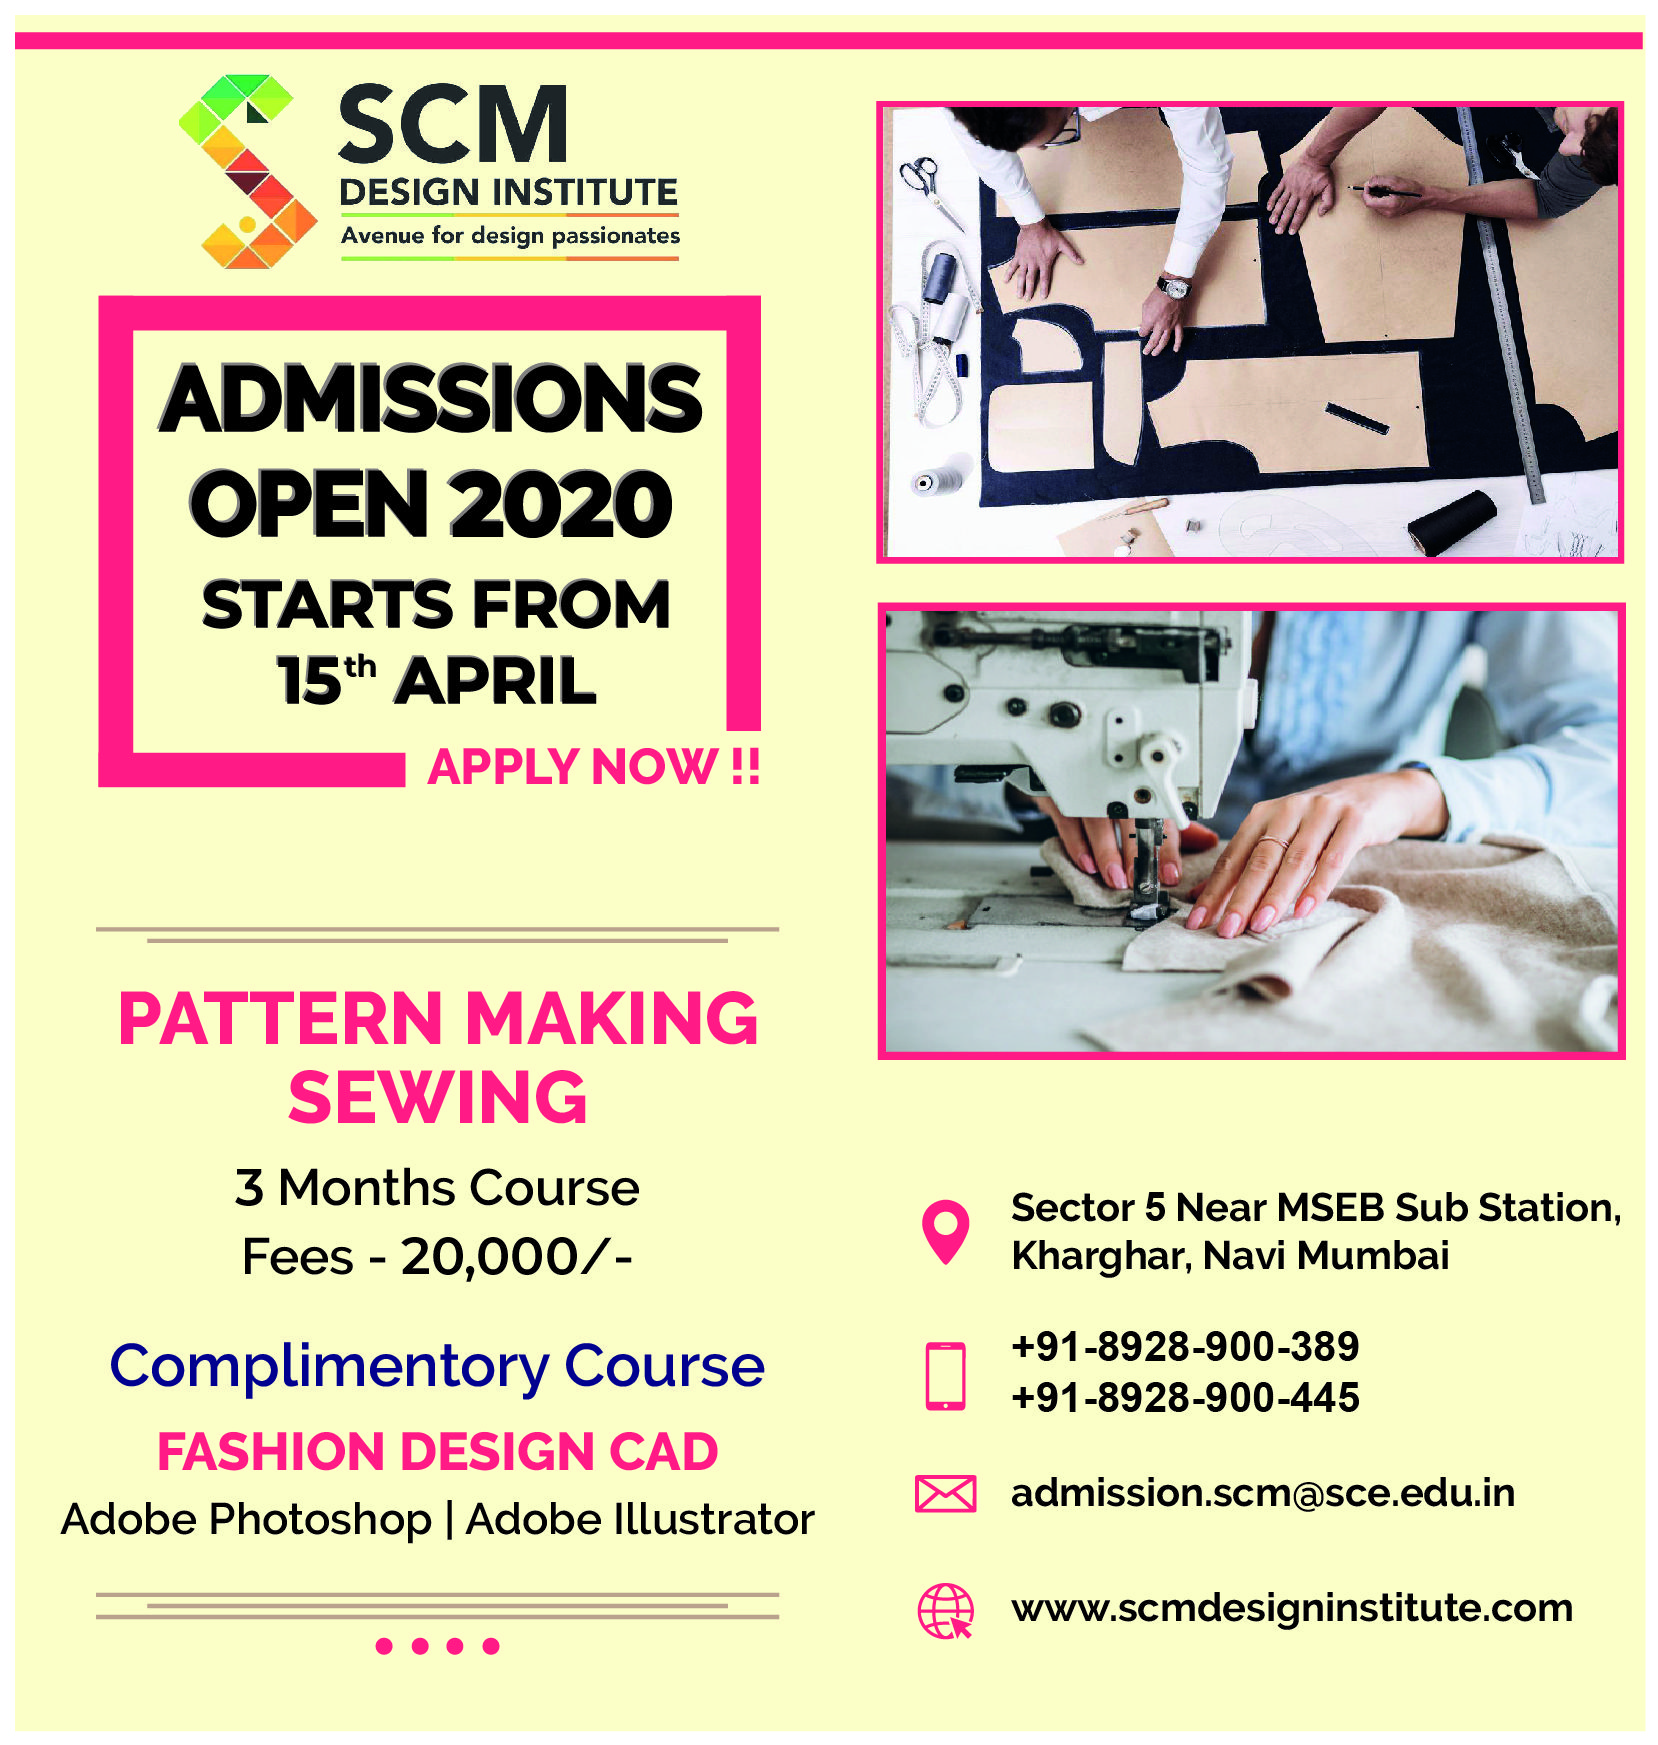 Scm Design Institute Is Coming Up With New Course On Pattern Making Sewing We Are Also Giving A Complimentary Course Of In 2020 Fashion Design Photoshop Admissions